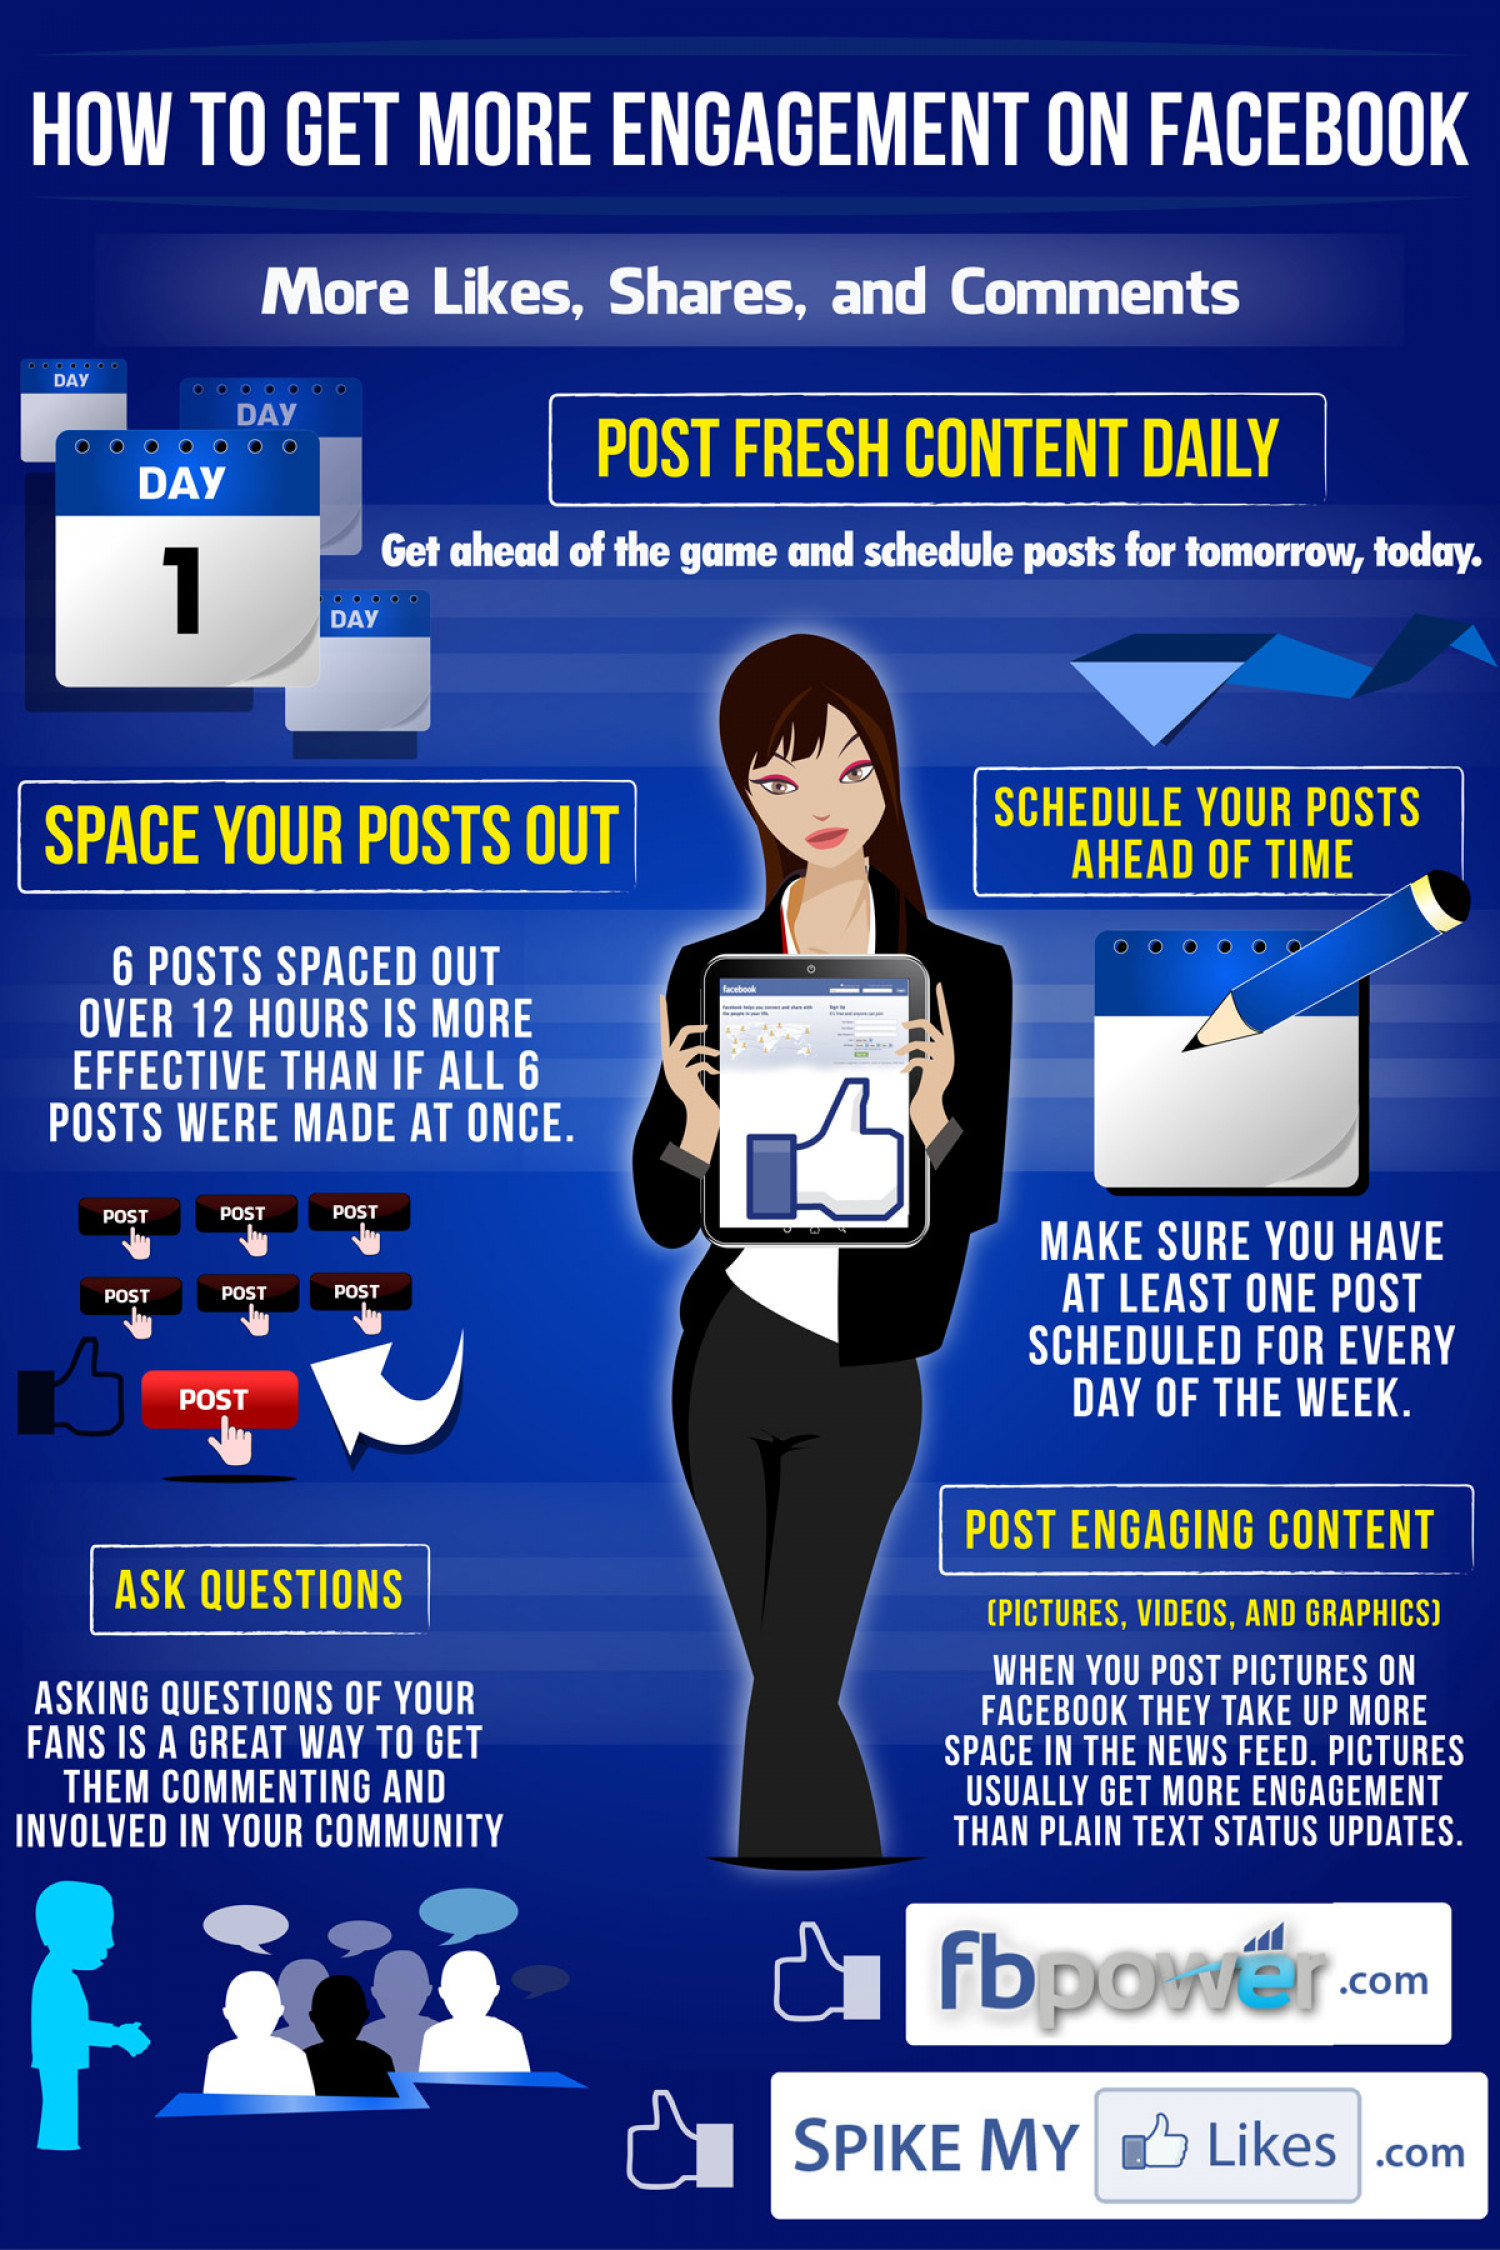 Facebook Marketing Infographic: Get More Likes, Shares, and Comments Infographic